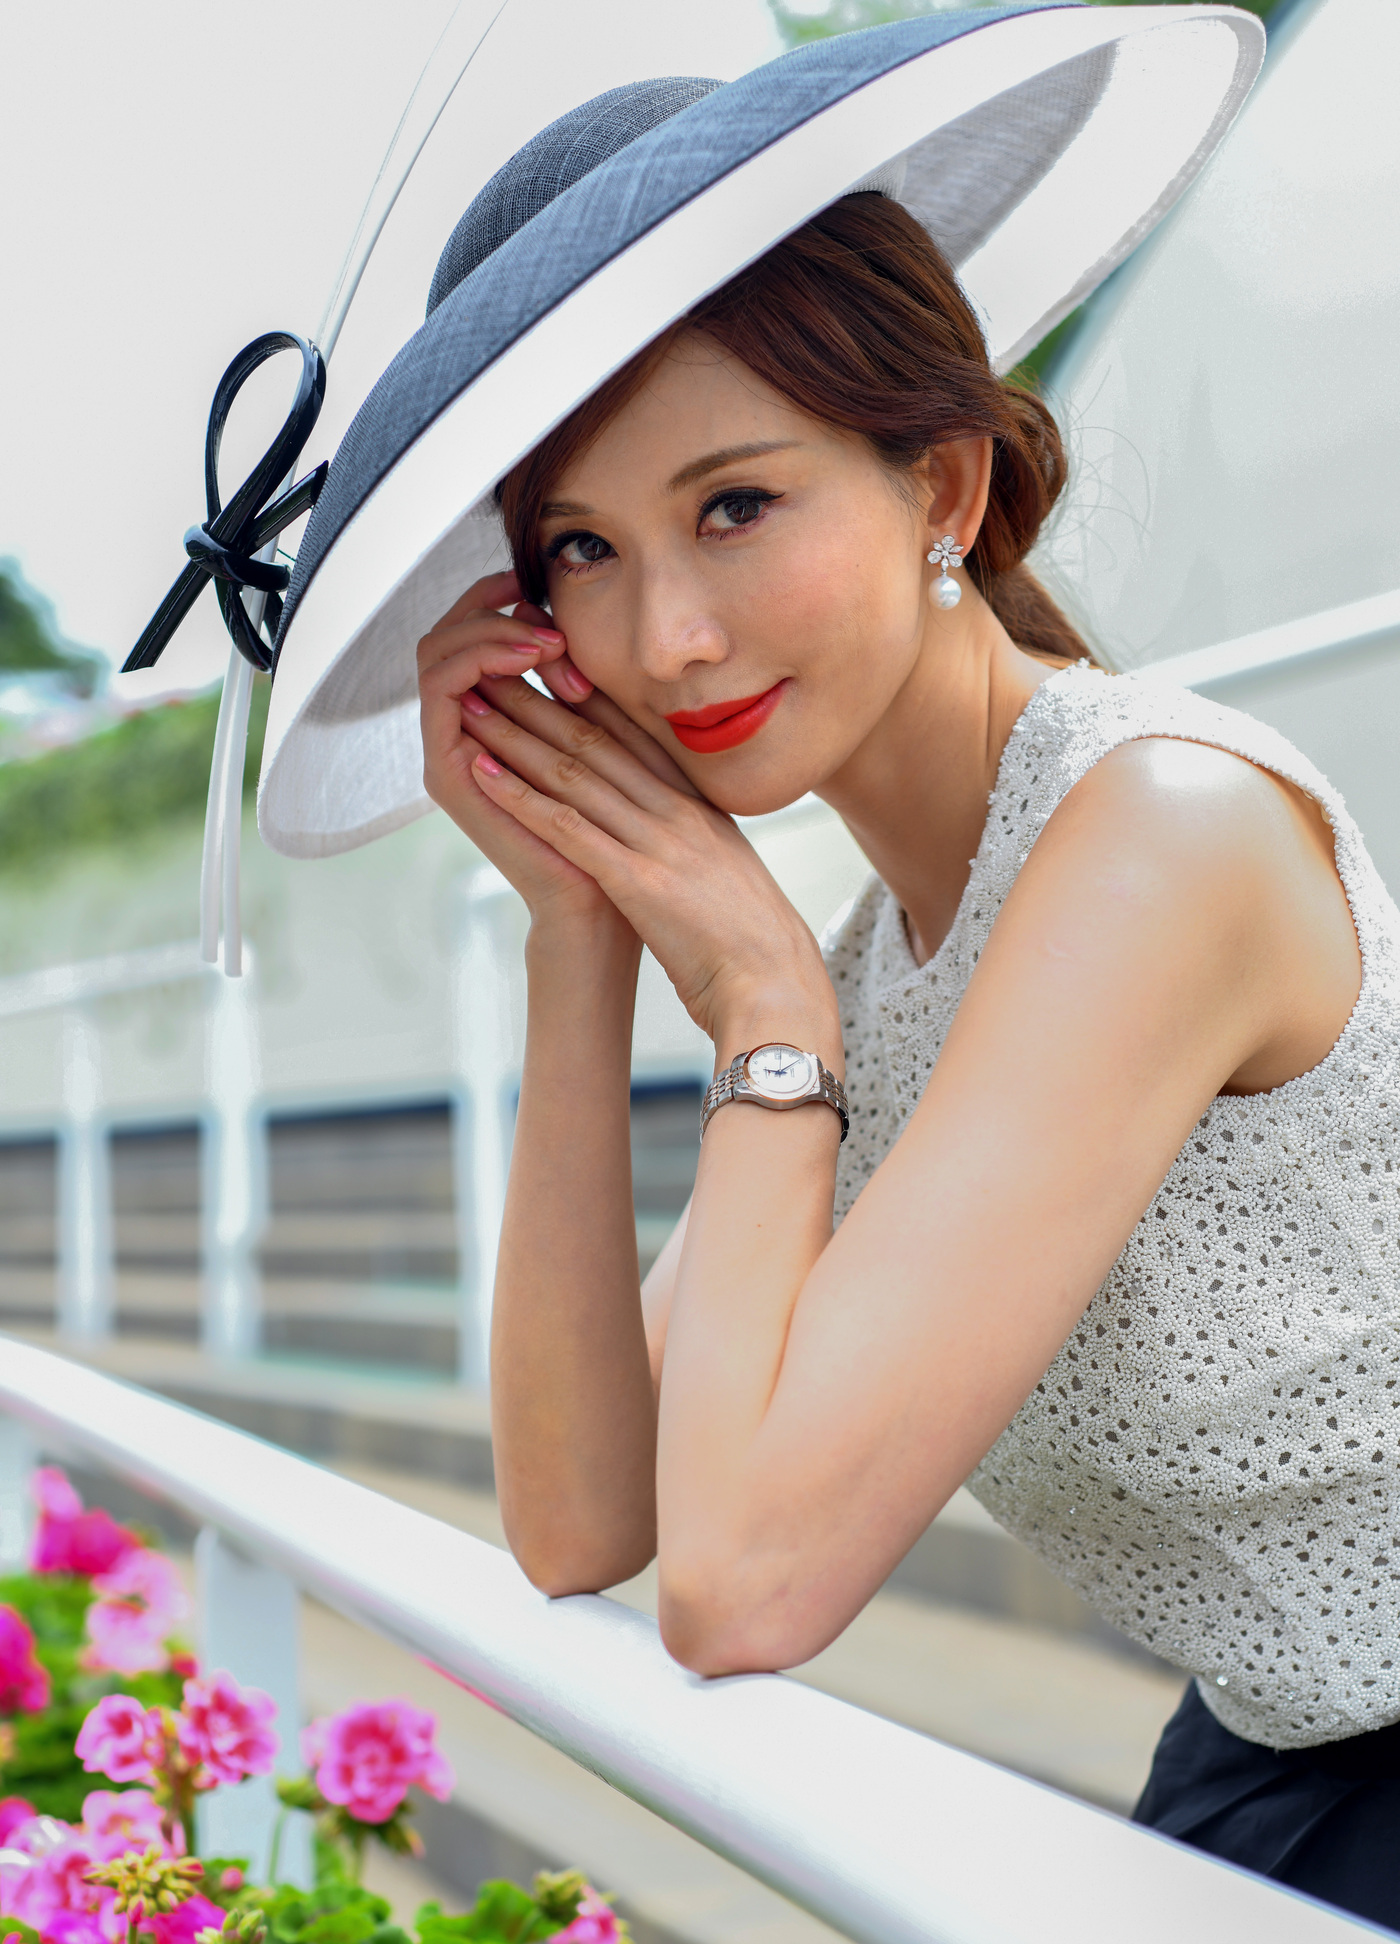 Longines Flat Racing Event: Longines celebrates elegance at Royal Ascot with Chi Ling Lin 3